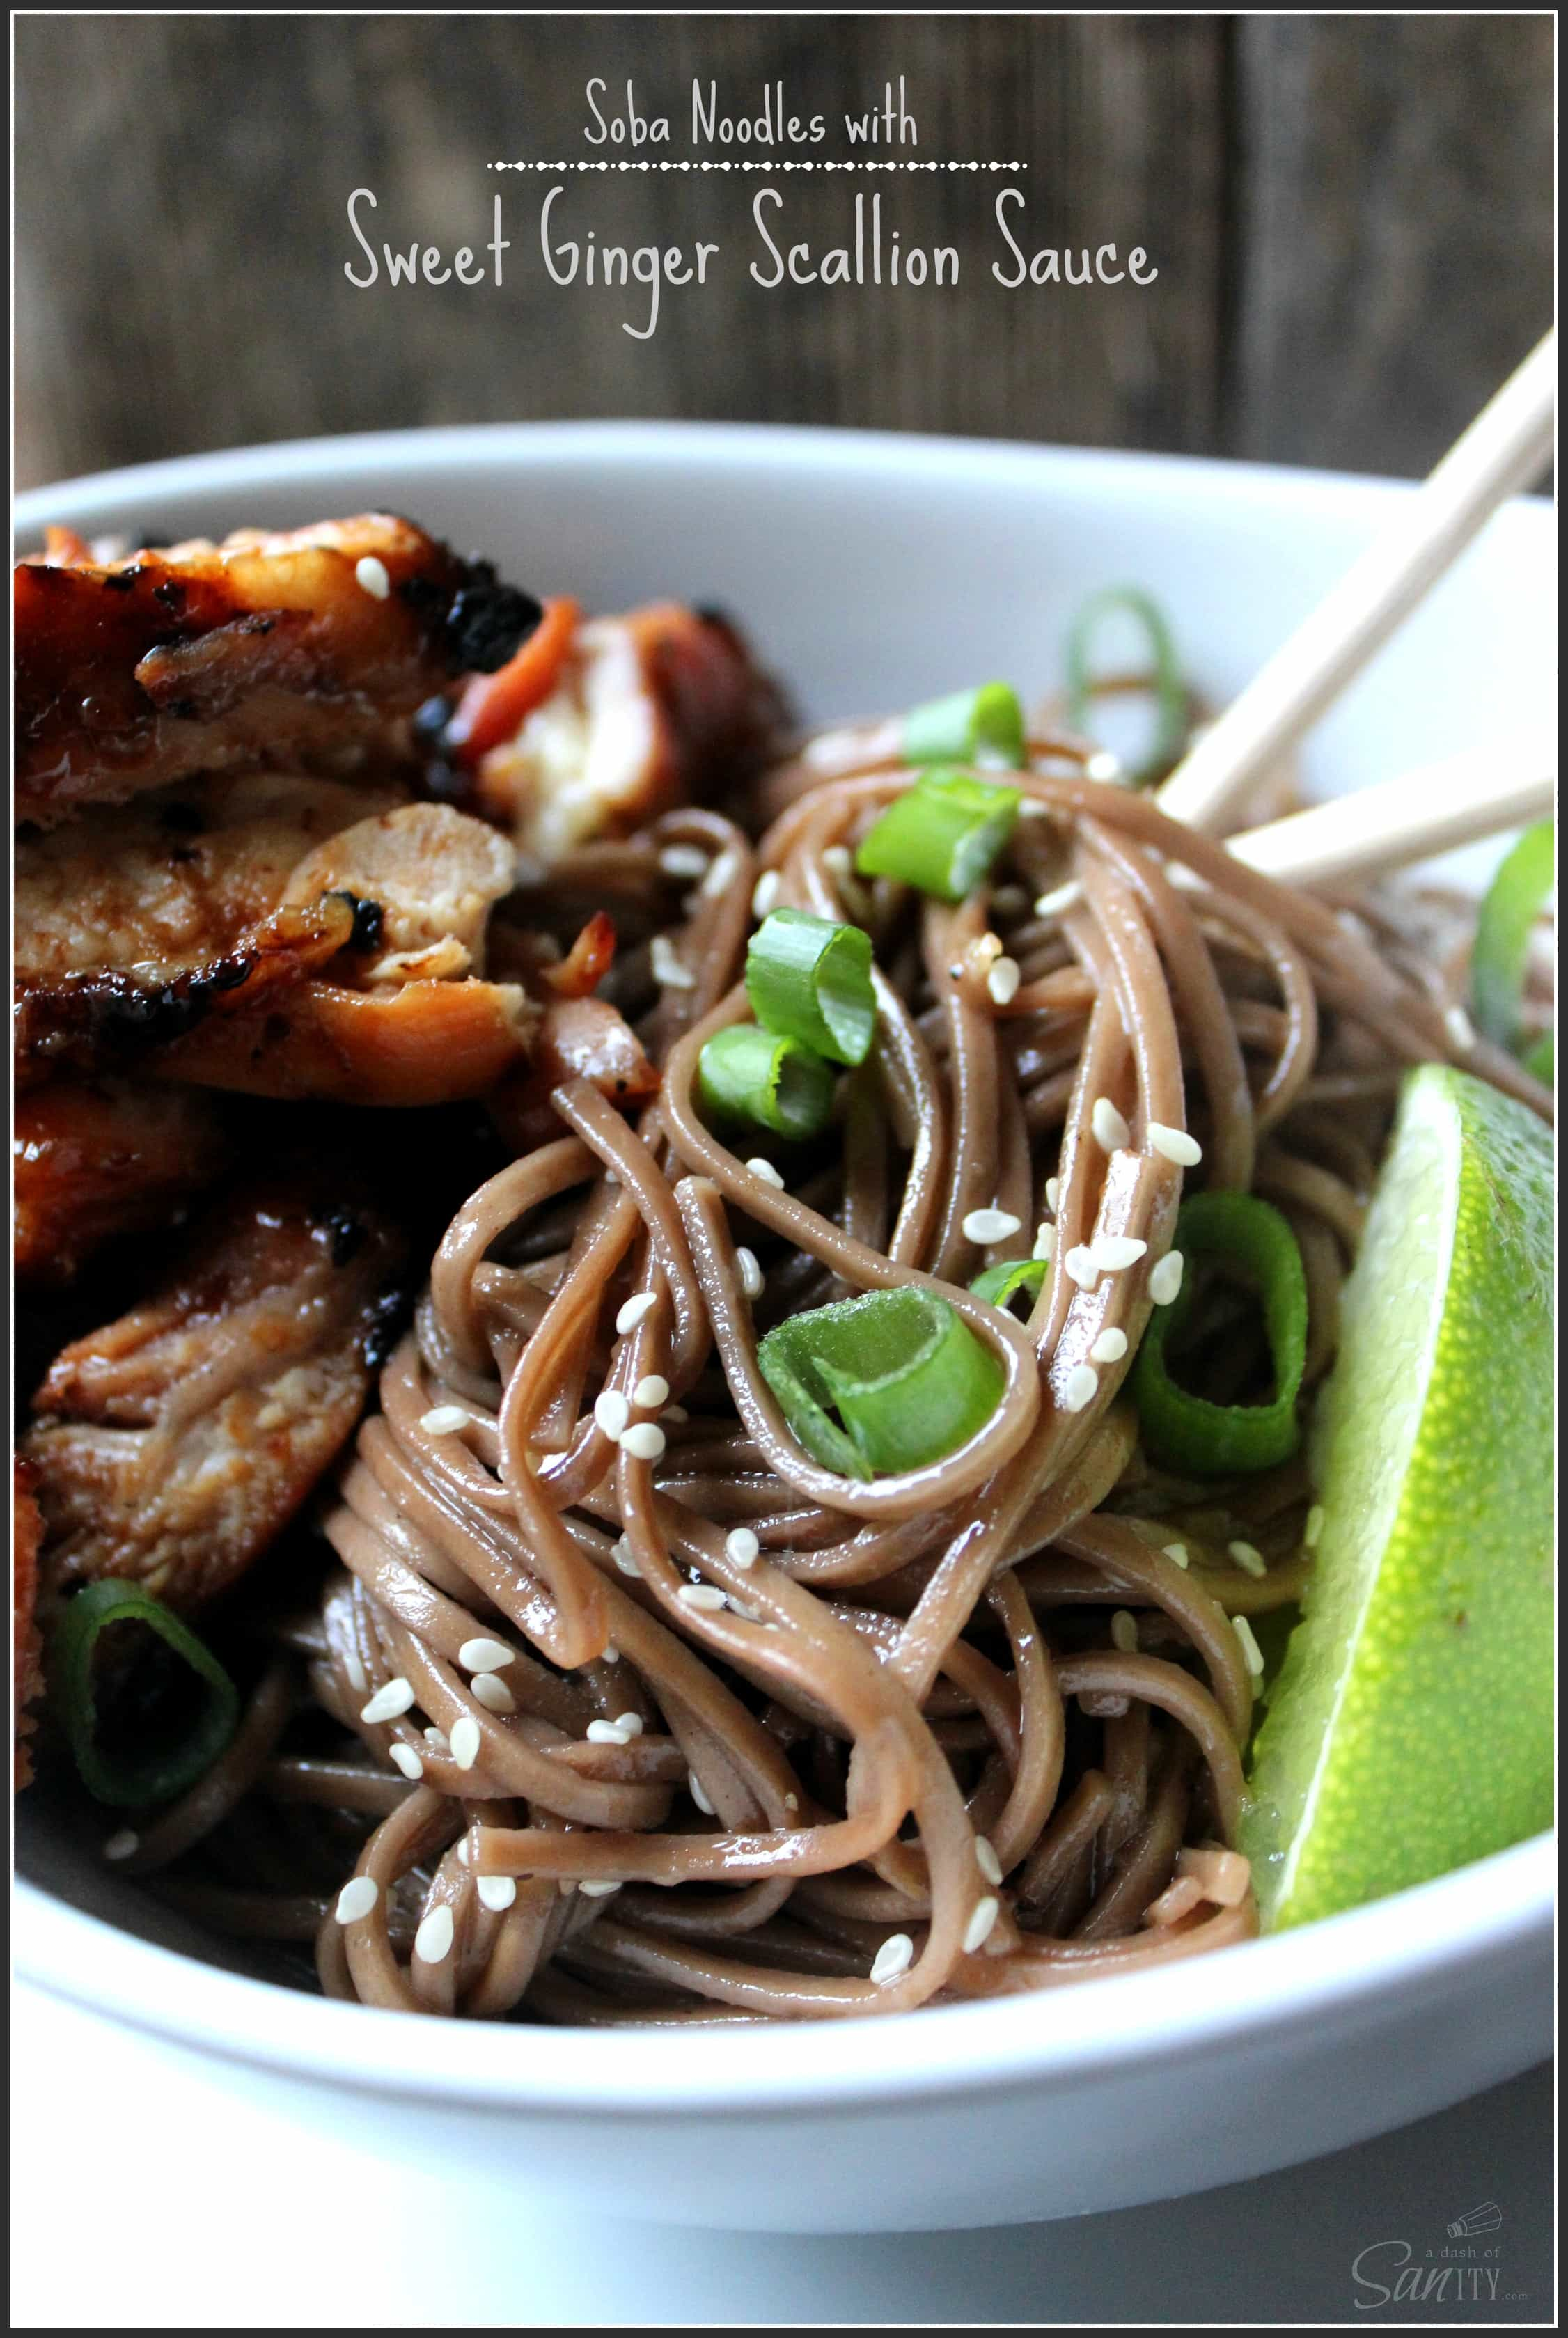 Soba Noodles with Sweet Ginger Scallion Sauce served with chopsticks and a lime slice in a bowl